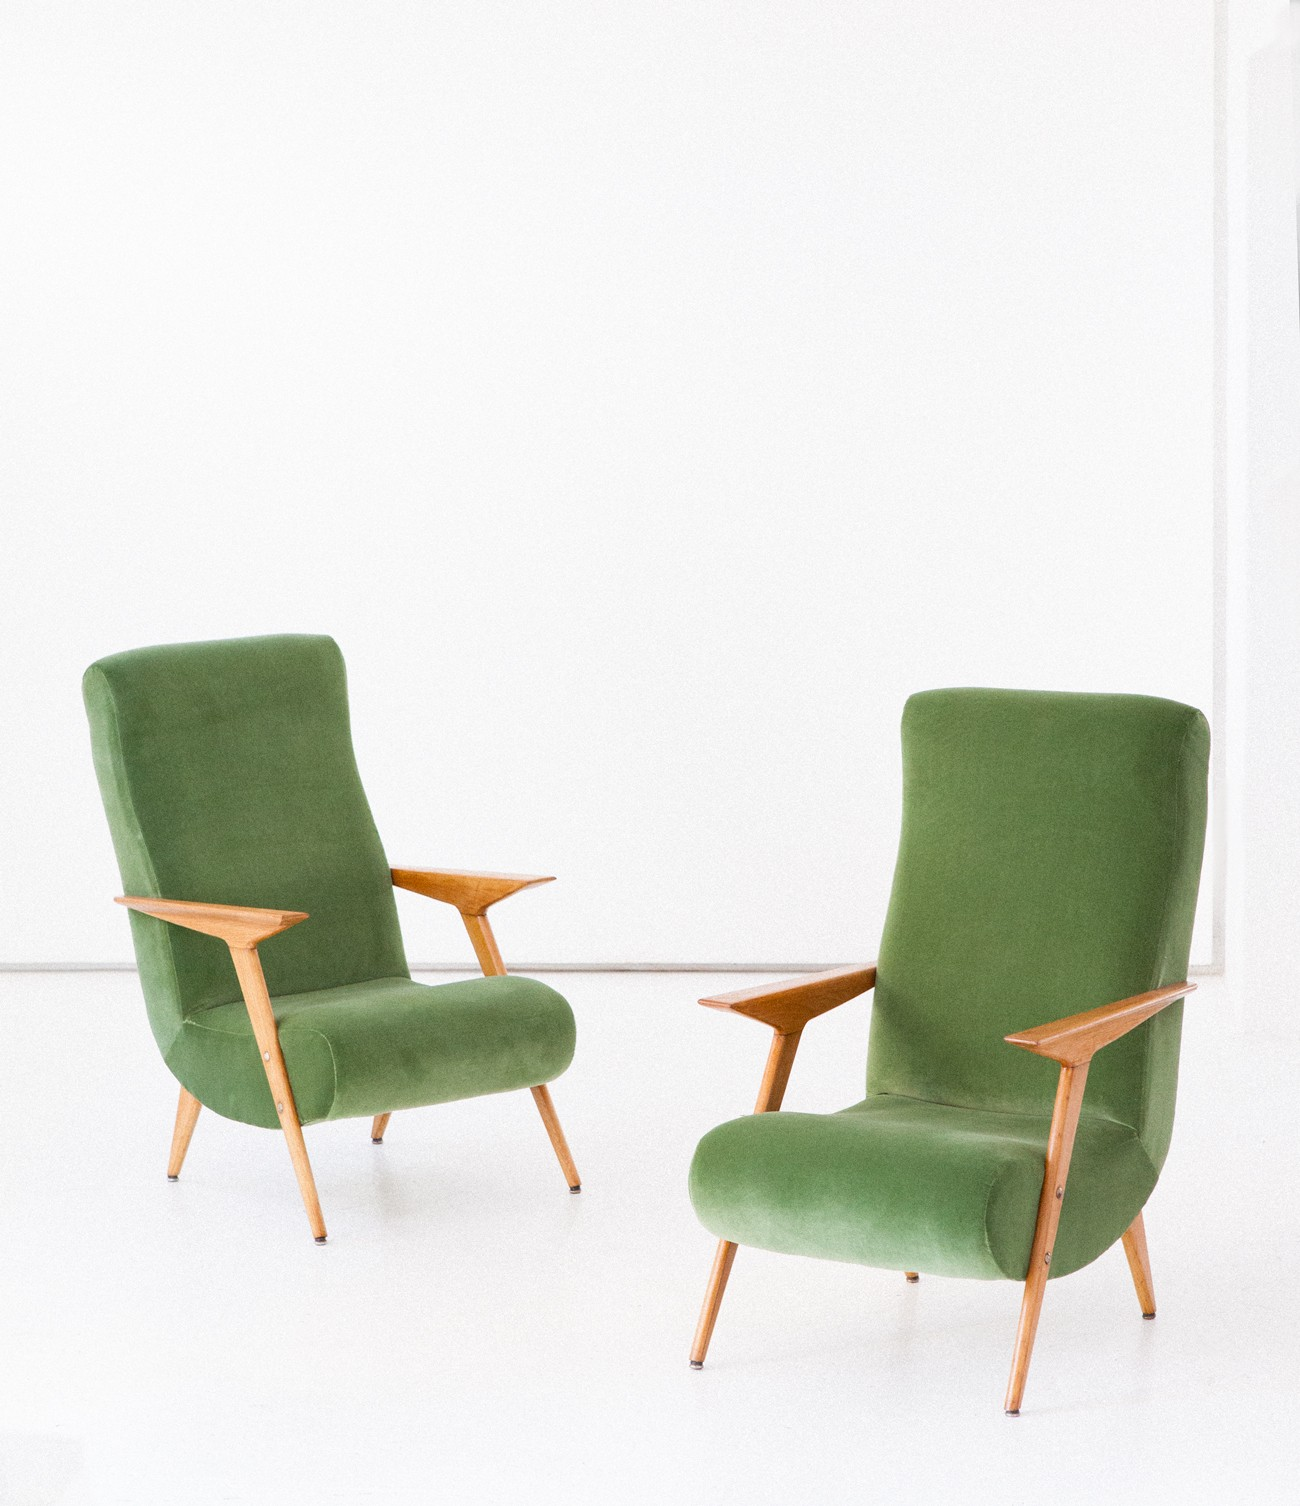 Pair of vintage oak wood and new green cotton velvet armchairs 1950s vintage designer furniture